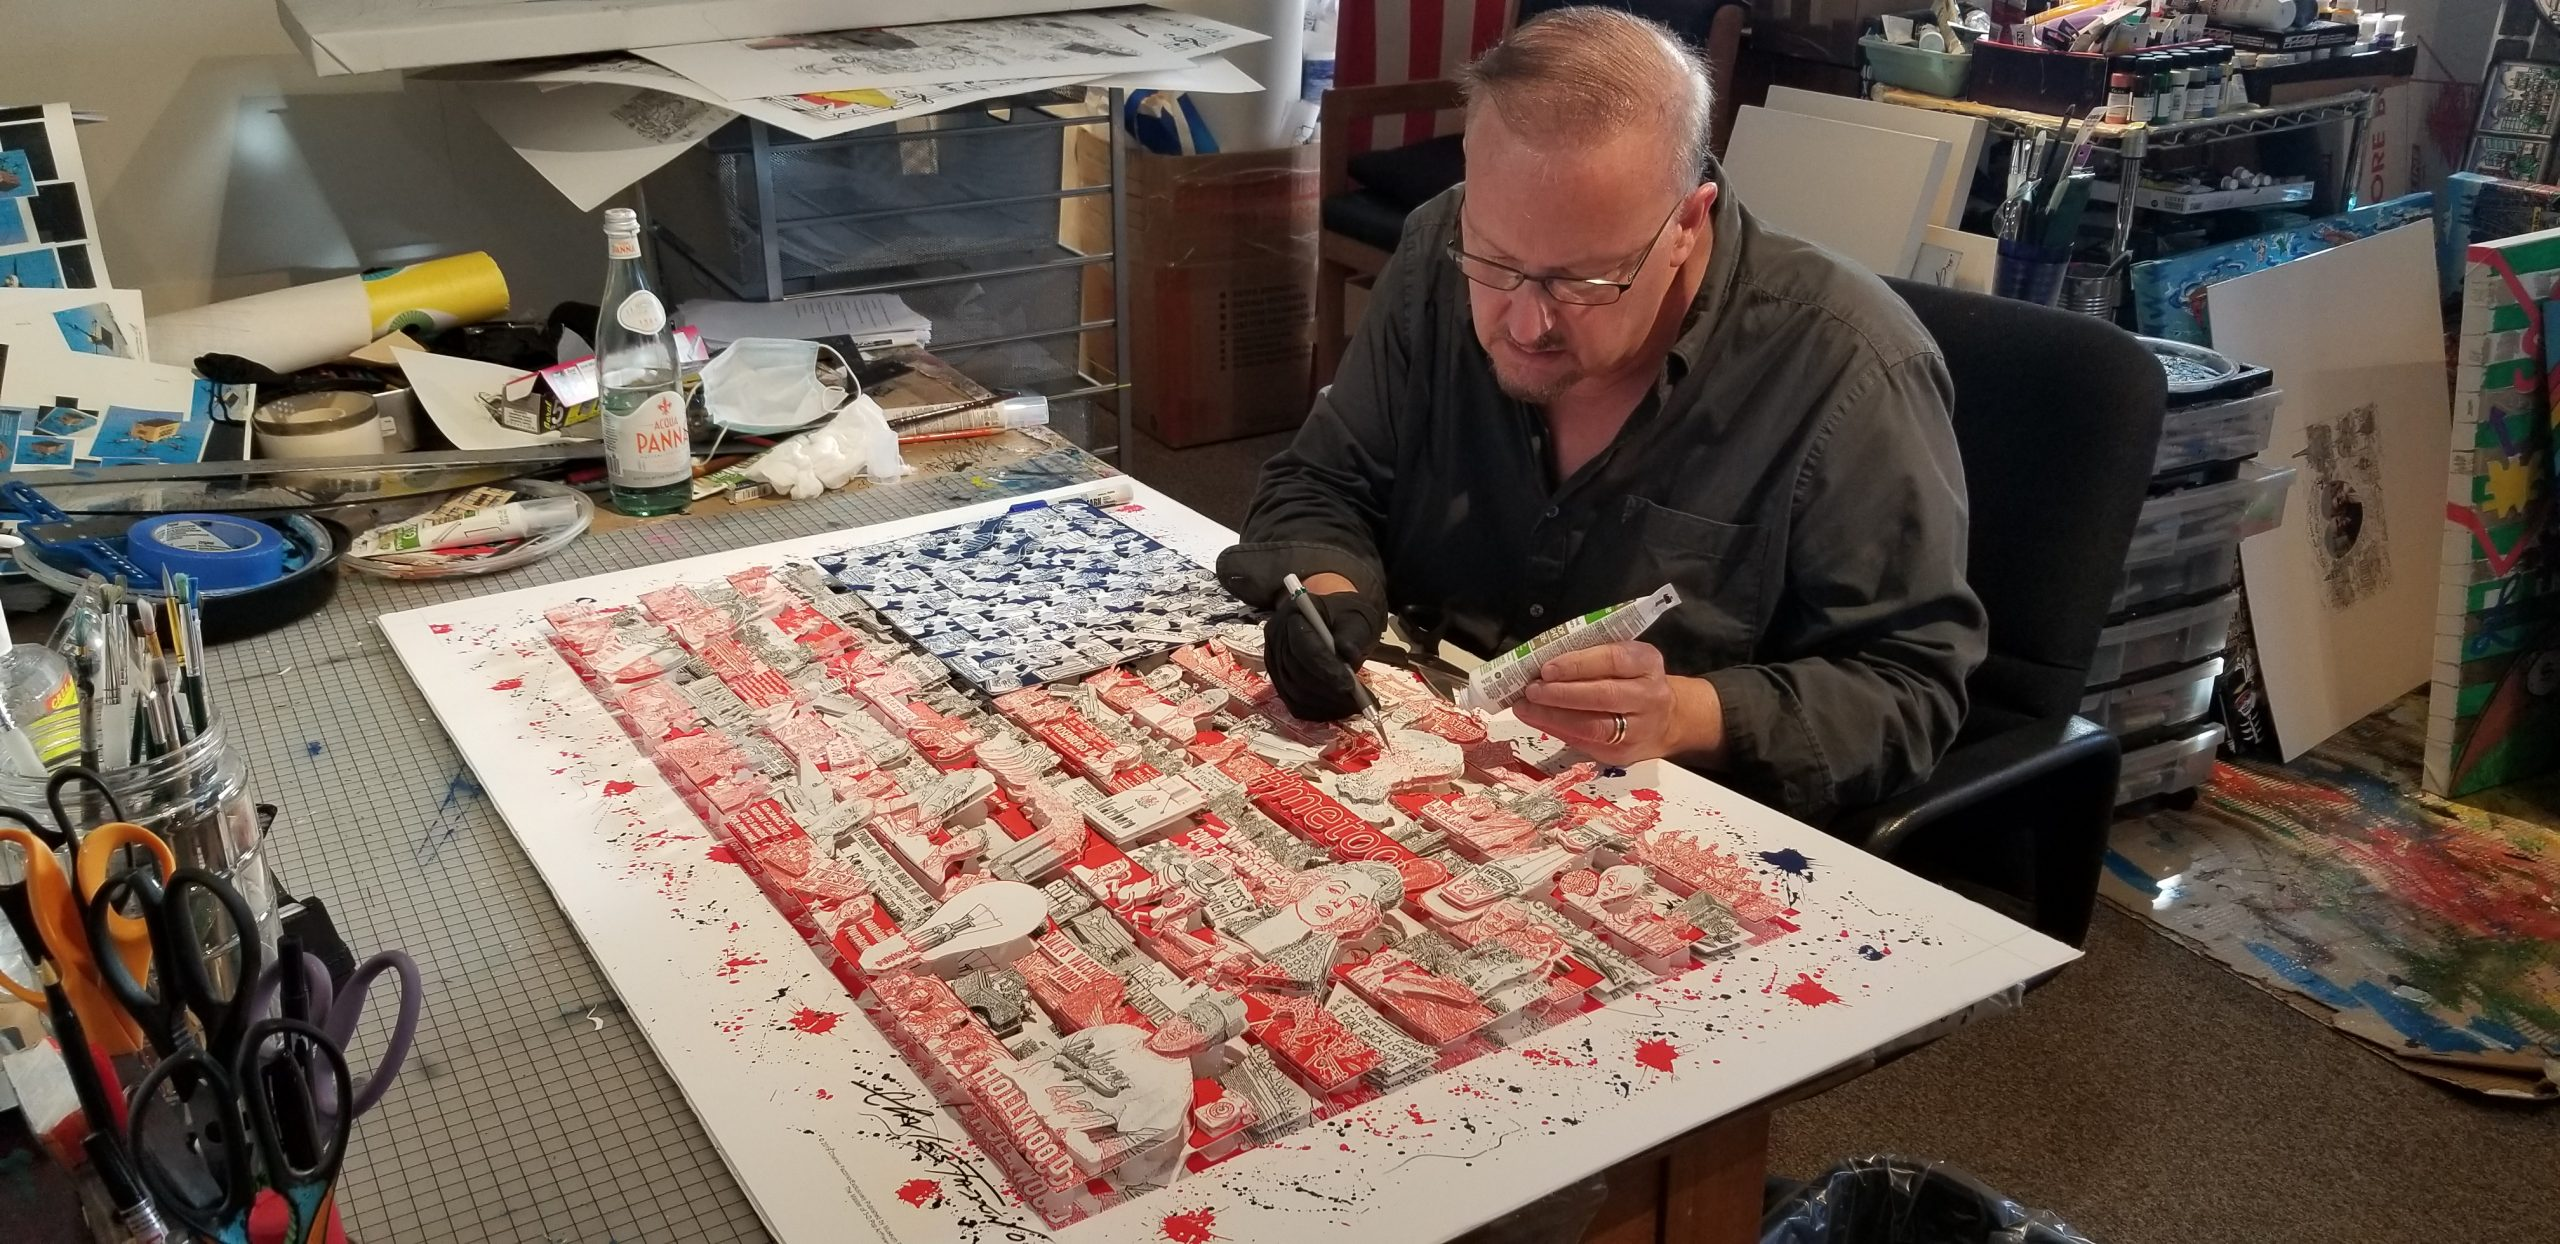 Fazzino adding two new pieces to his 2019 flag release.